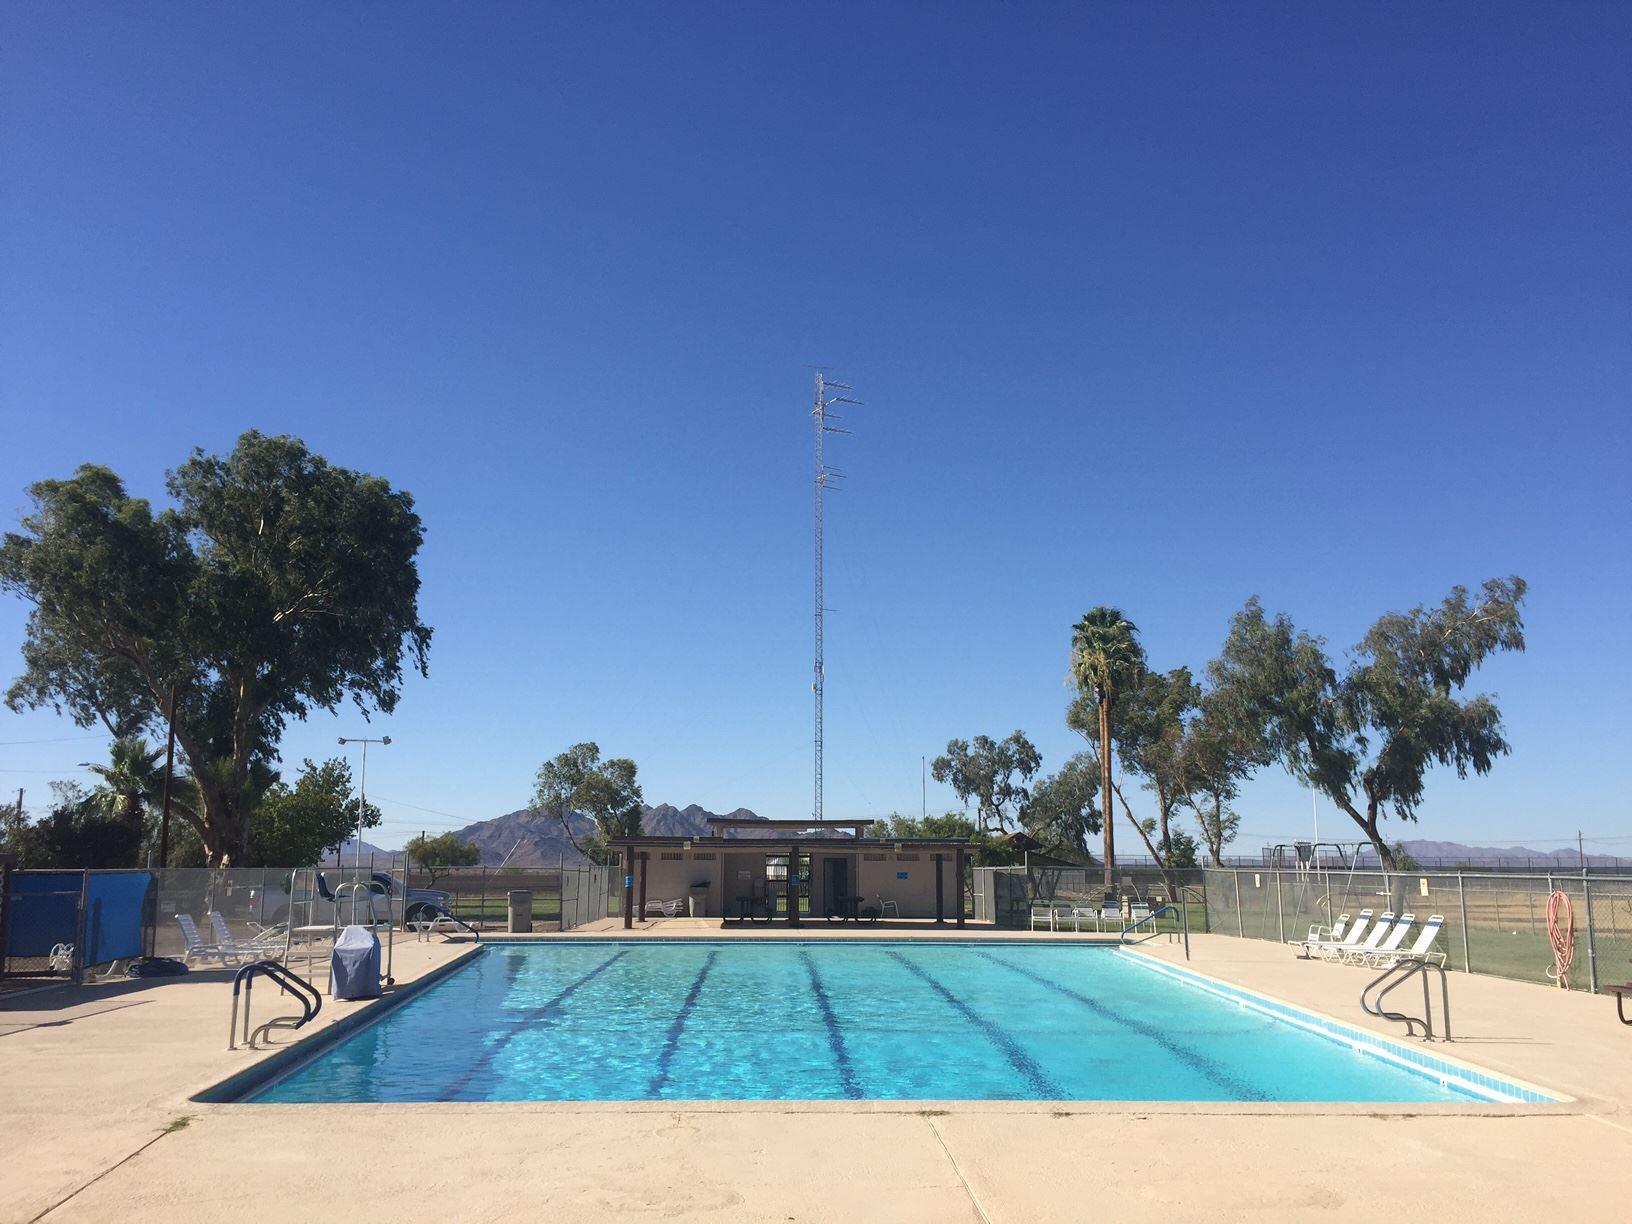 Community Pool at Burleson Park, Gila Bend